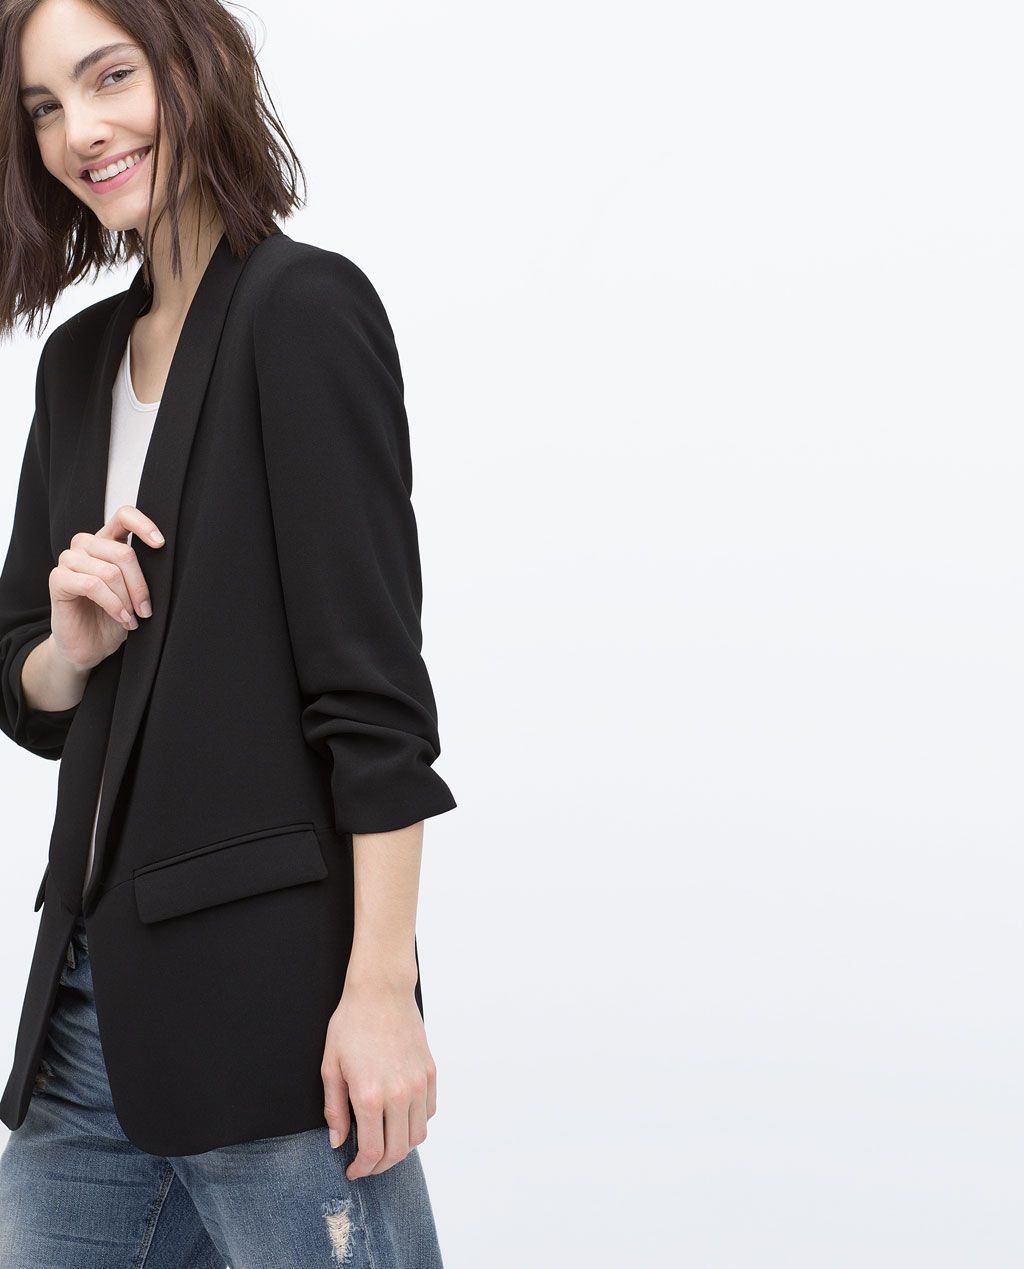 b0dc7ce518 CREPE BLAZER-Outerwear-WOMAN-COLLECTION AW15 | ZARA Finland | Mode ...